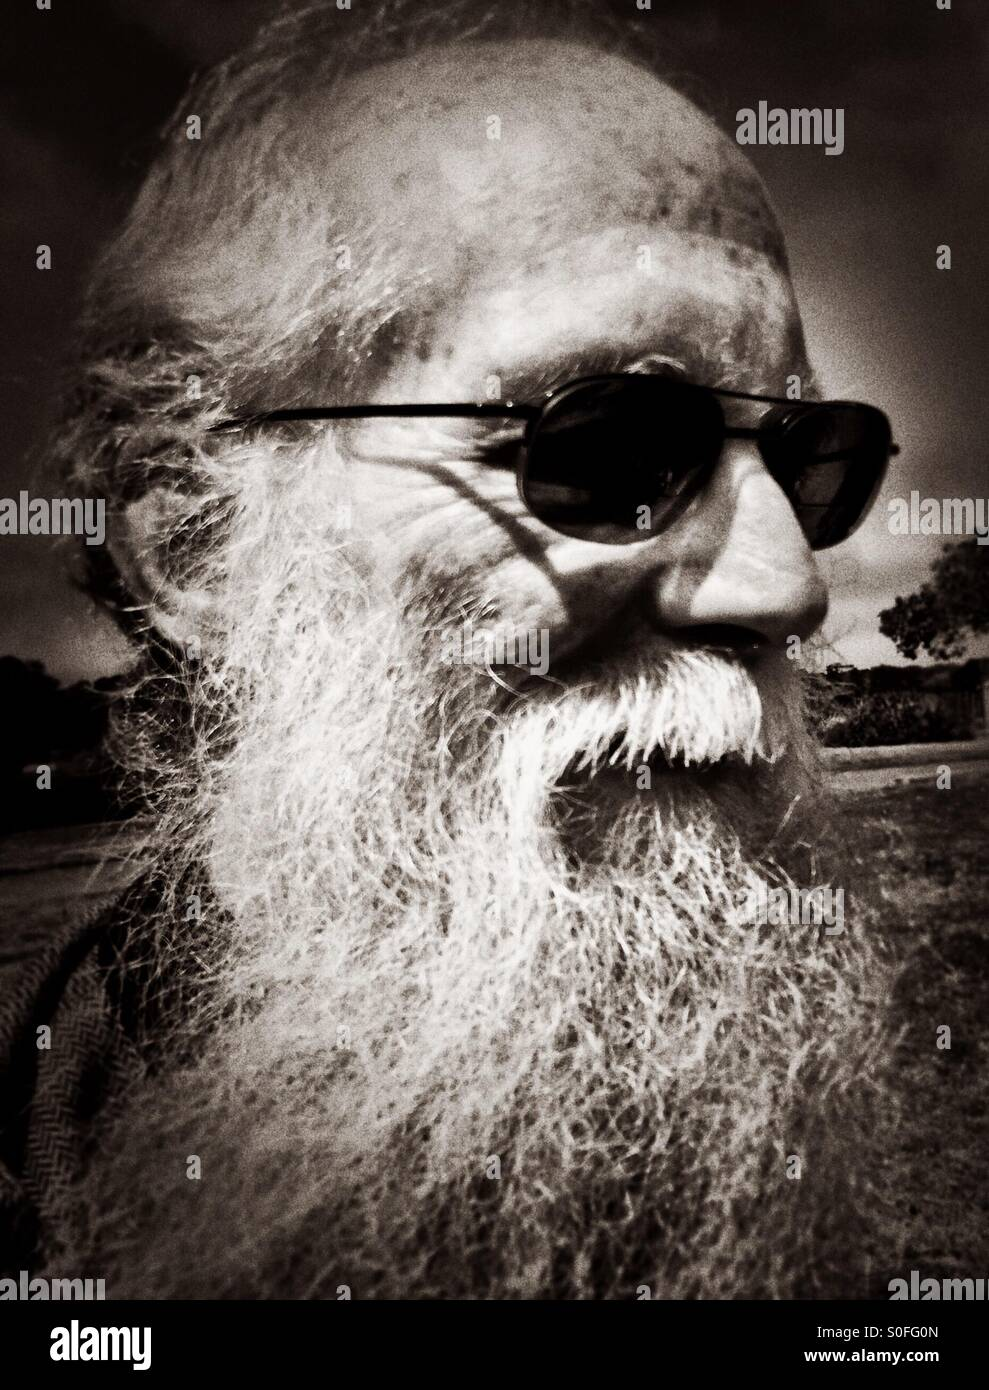 c28fa7599c38 Portrait of an elderly gentleman with long white beard and sunglasses.  Black and white vignette